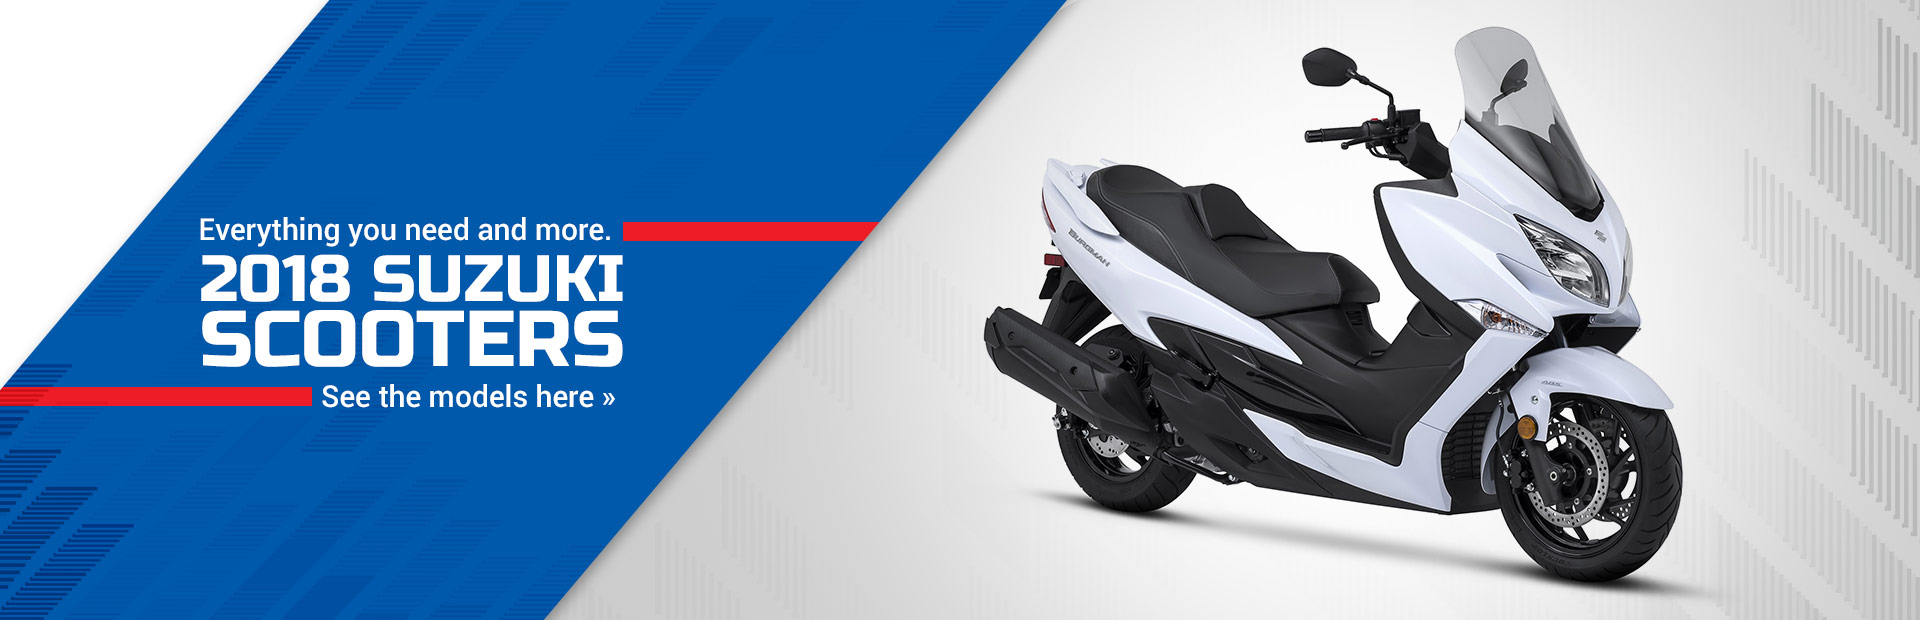 2018 Suzuki Scooters: Click here to view the models.